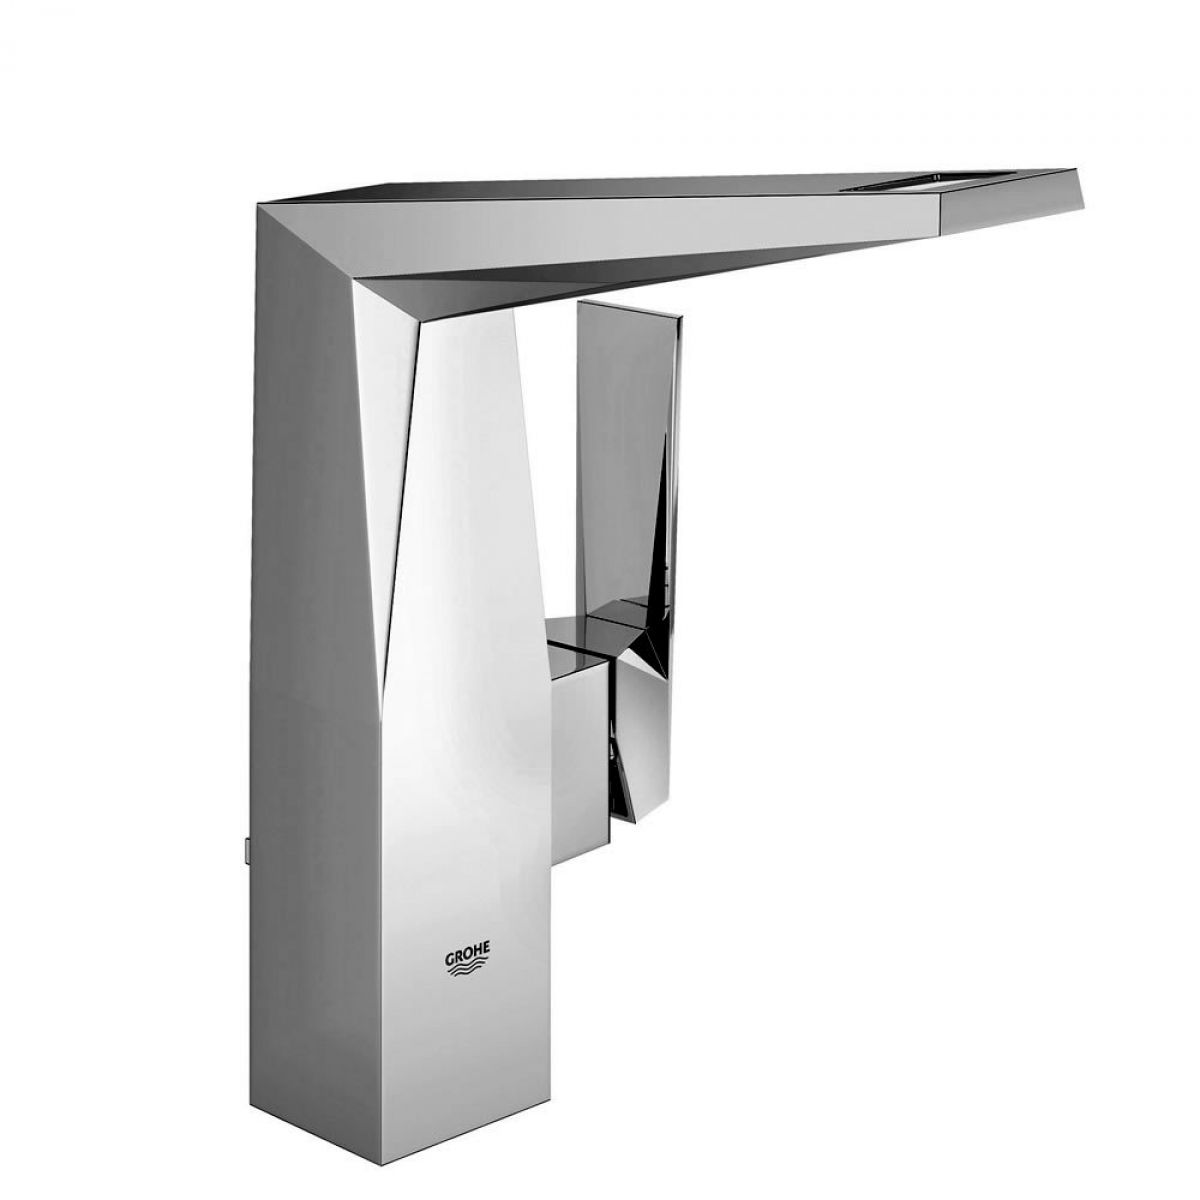 grohe allure brilliant side lever basin mixer tap uk. Black Bedroom Furniture Sets. Home Design Ideas